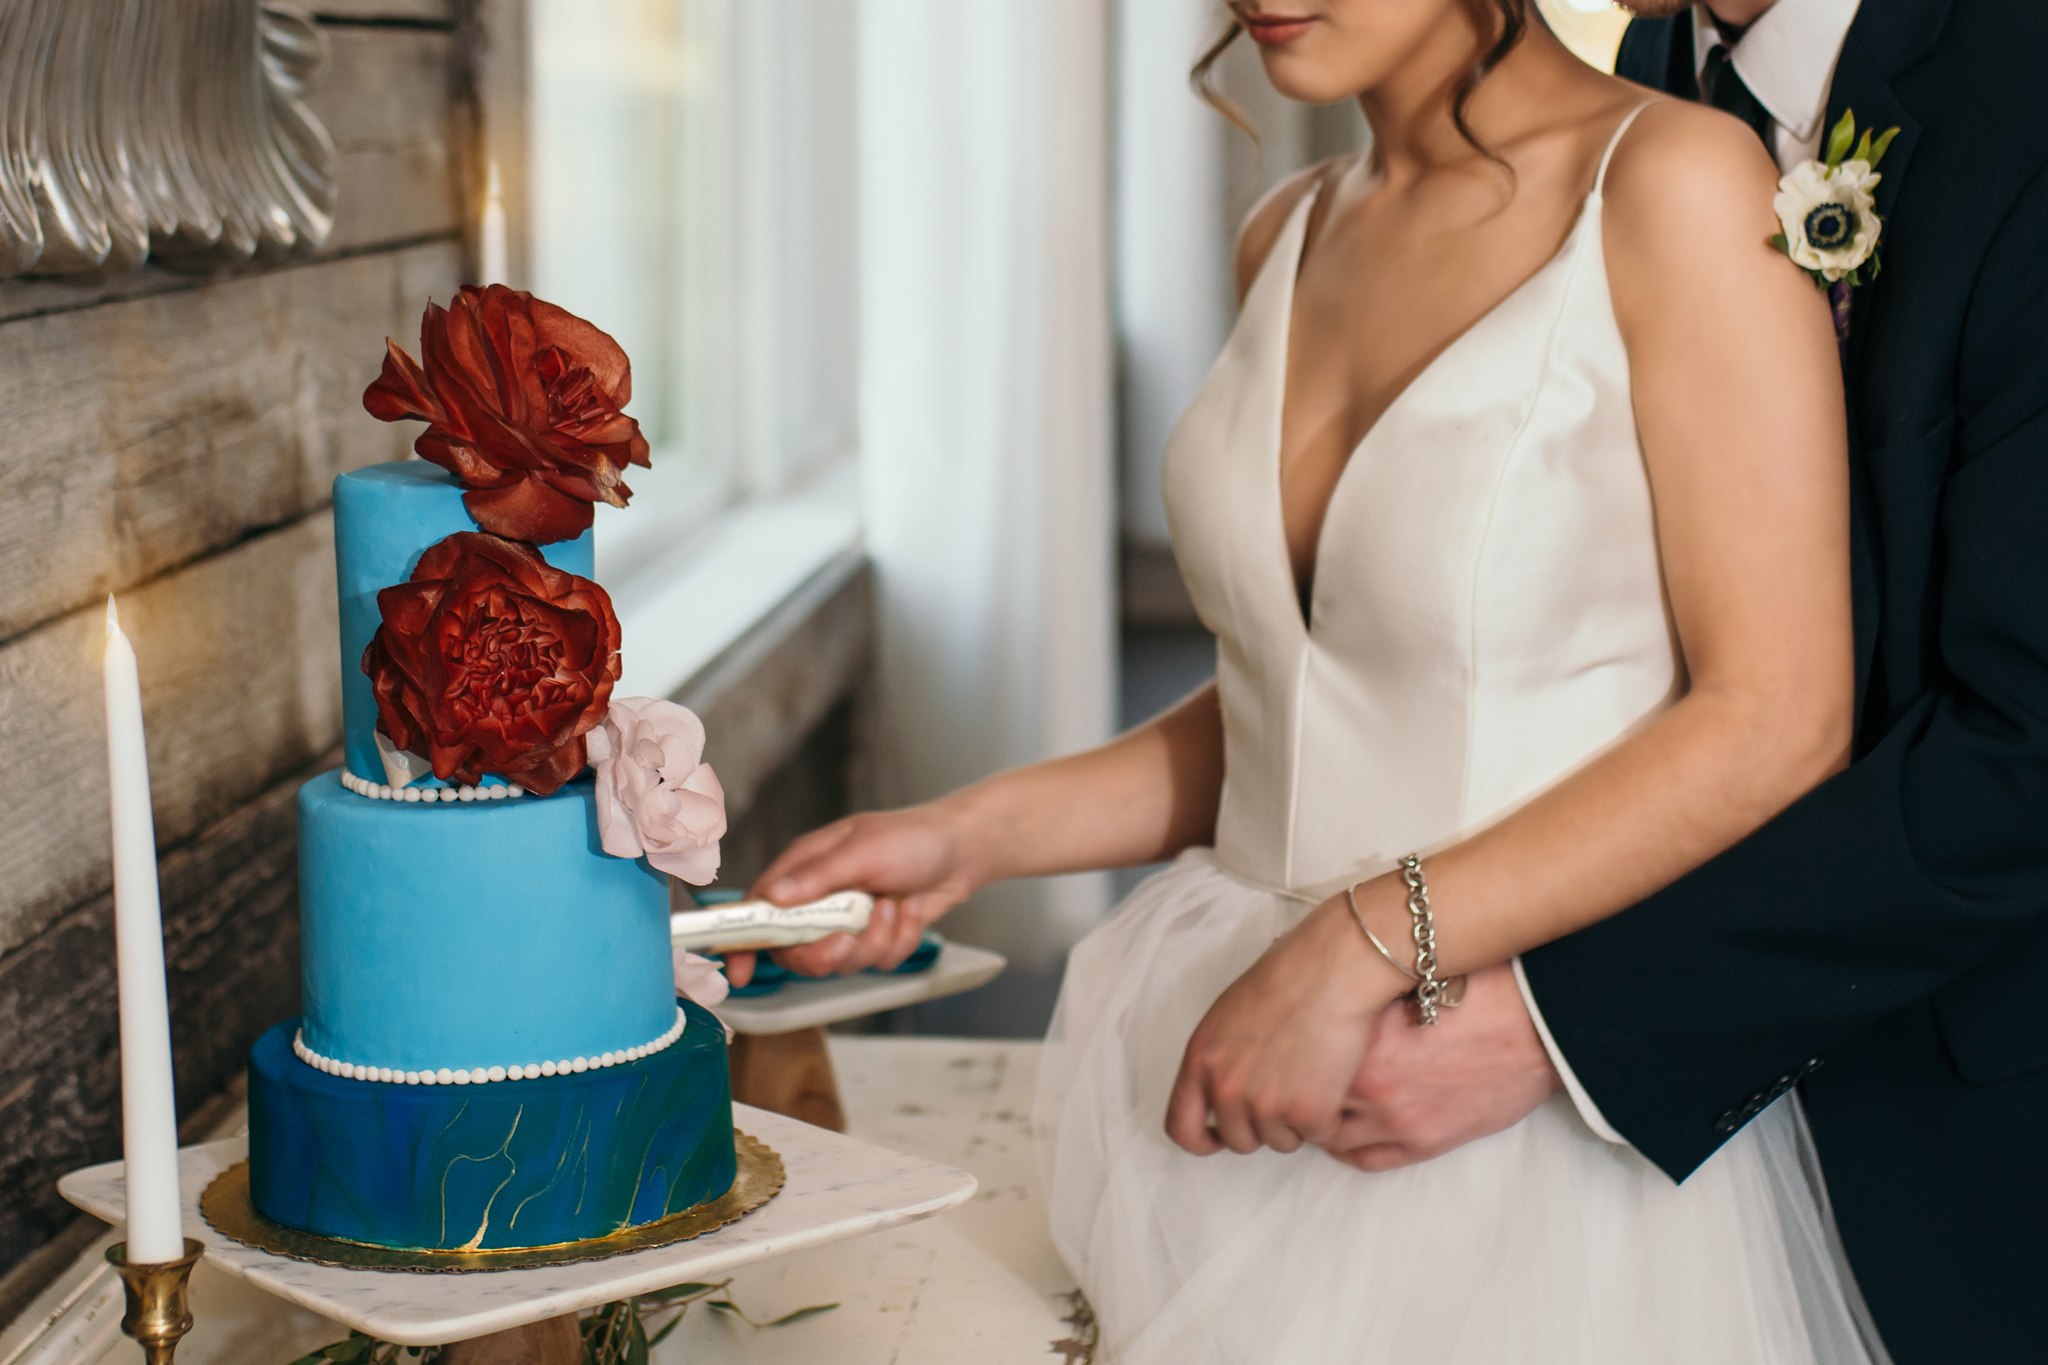 076 Jewel Tone Wedding Styled Shoot_Silver Knot_Montana Wedding Planner_Montana Wedding Photographer_Montana Wedding Videography_Honeybee Weddings-0787.jpg